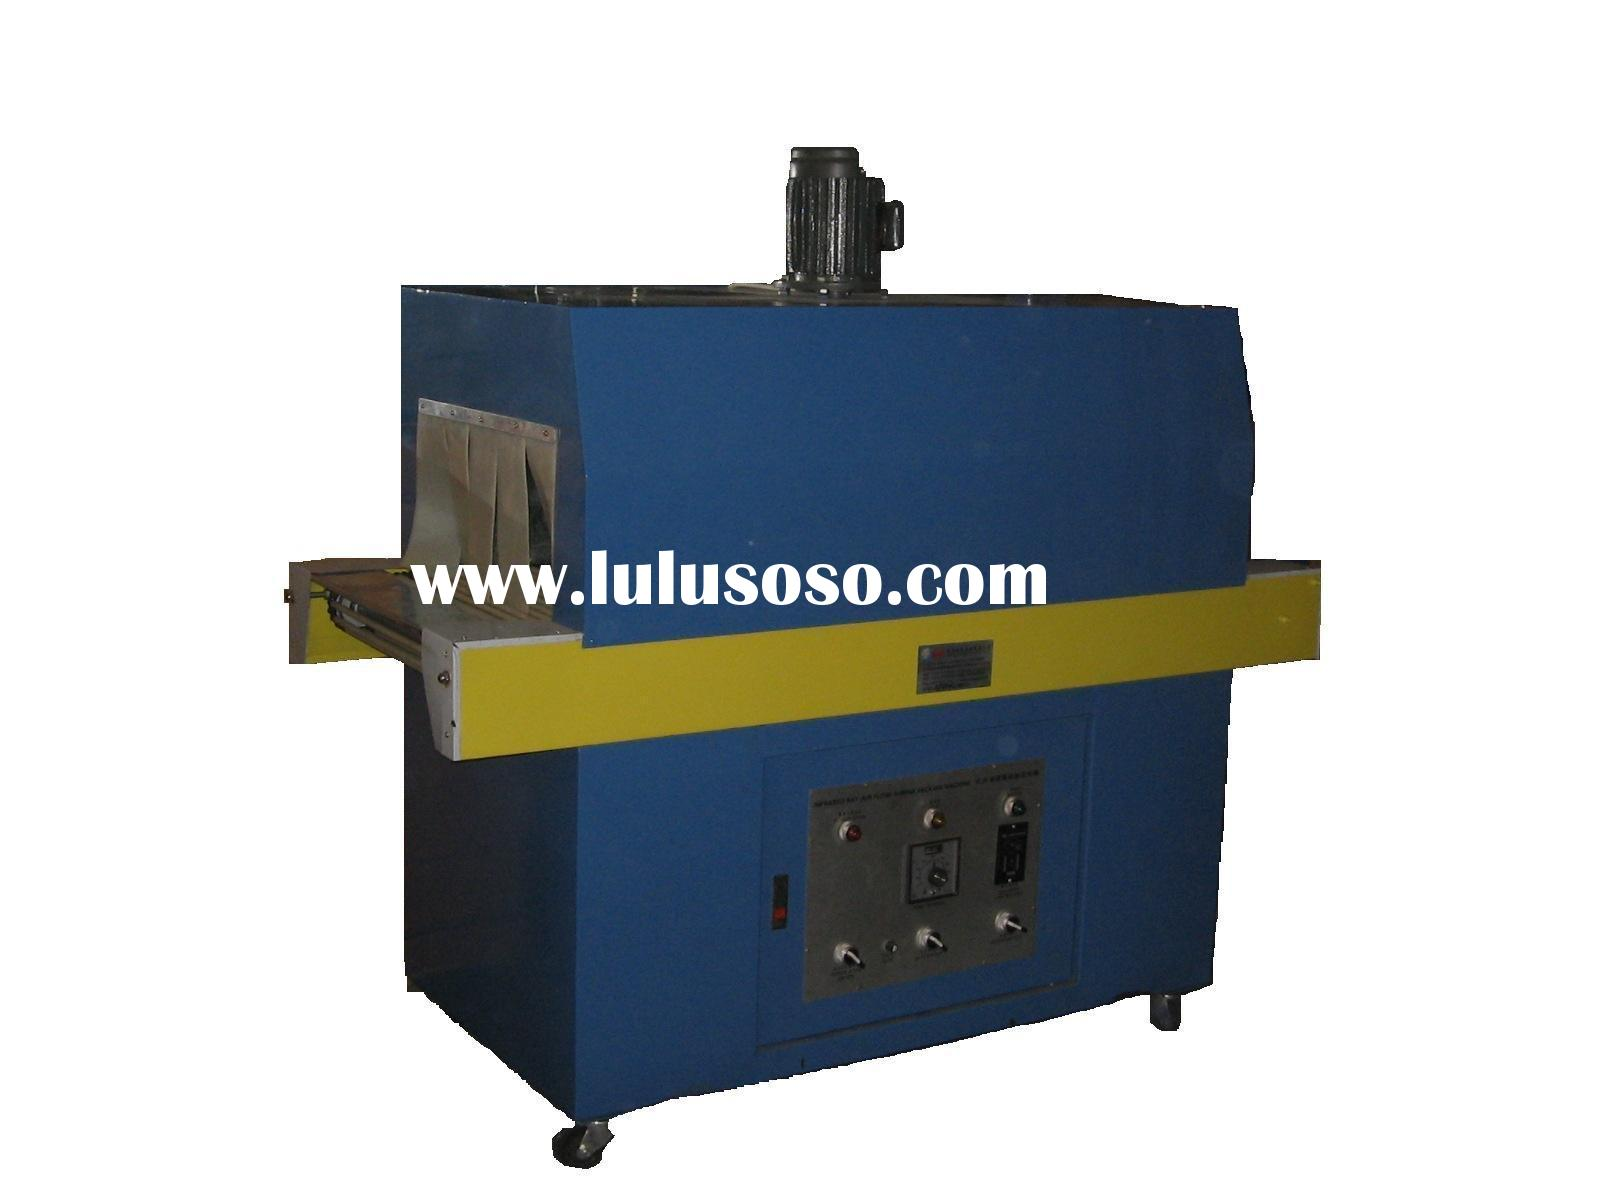 Thermo shrink packaging machine